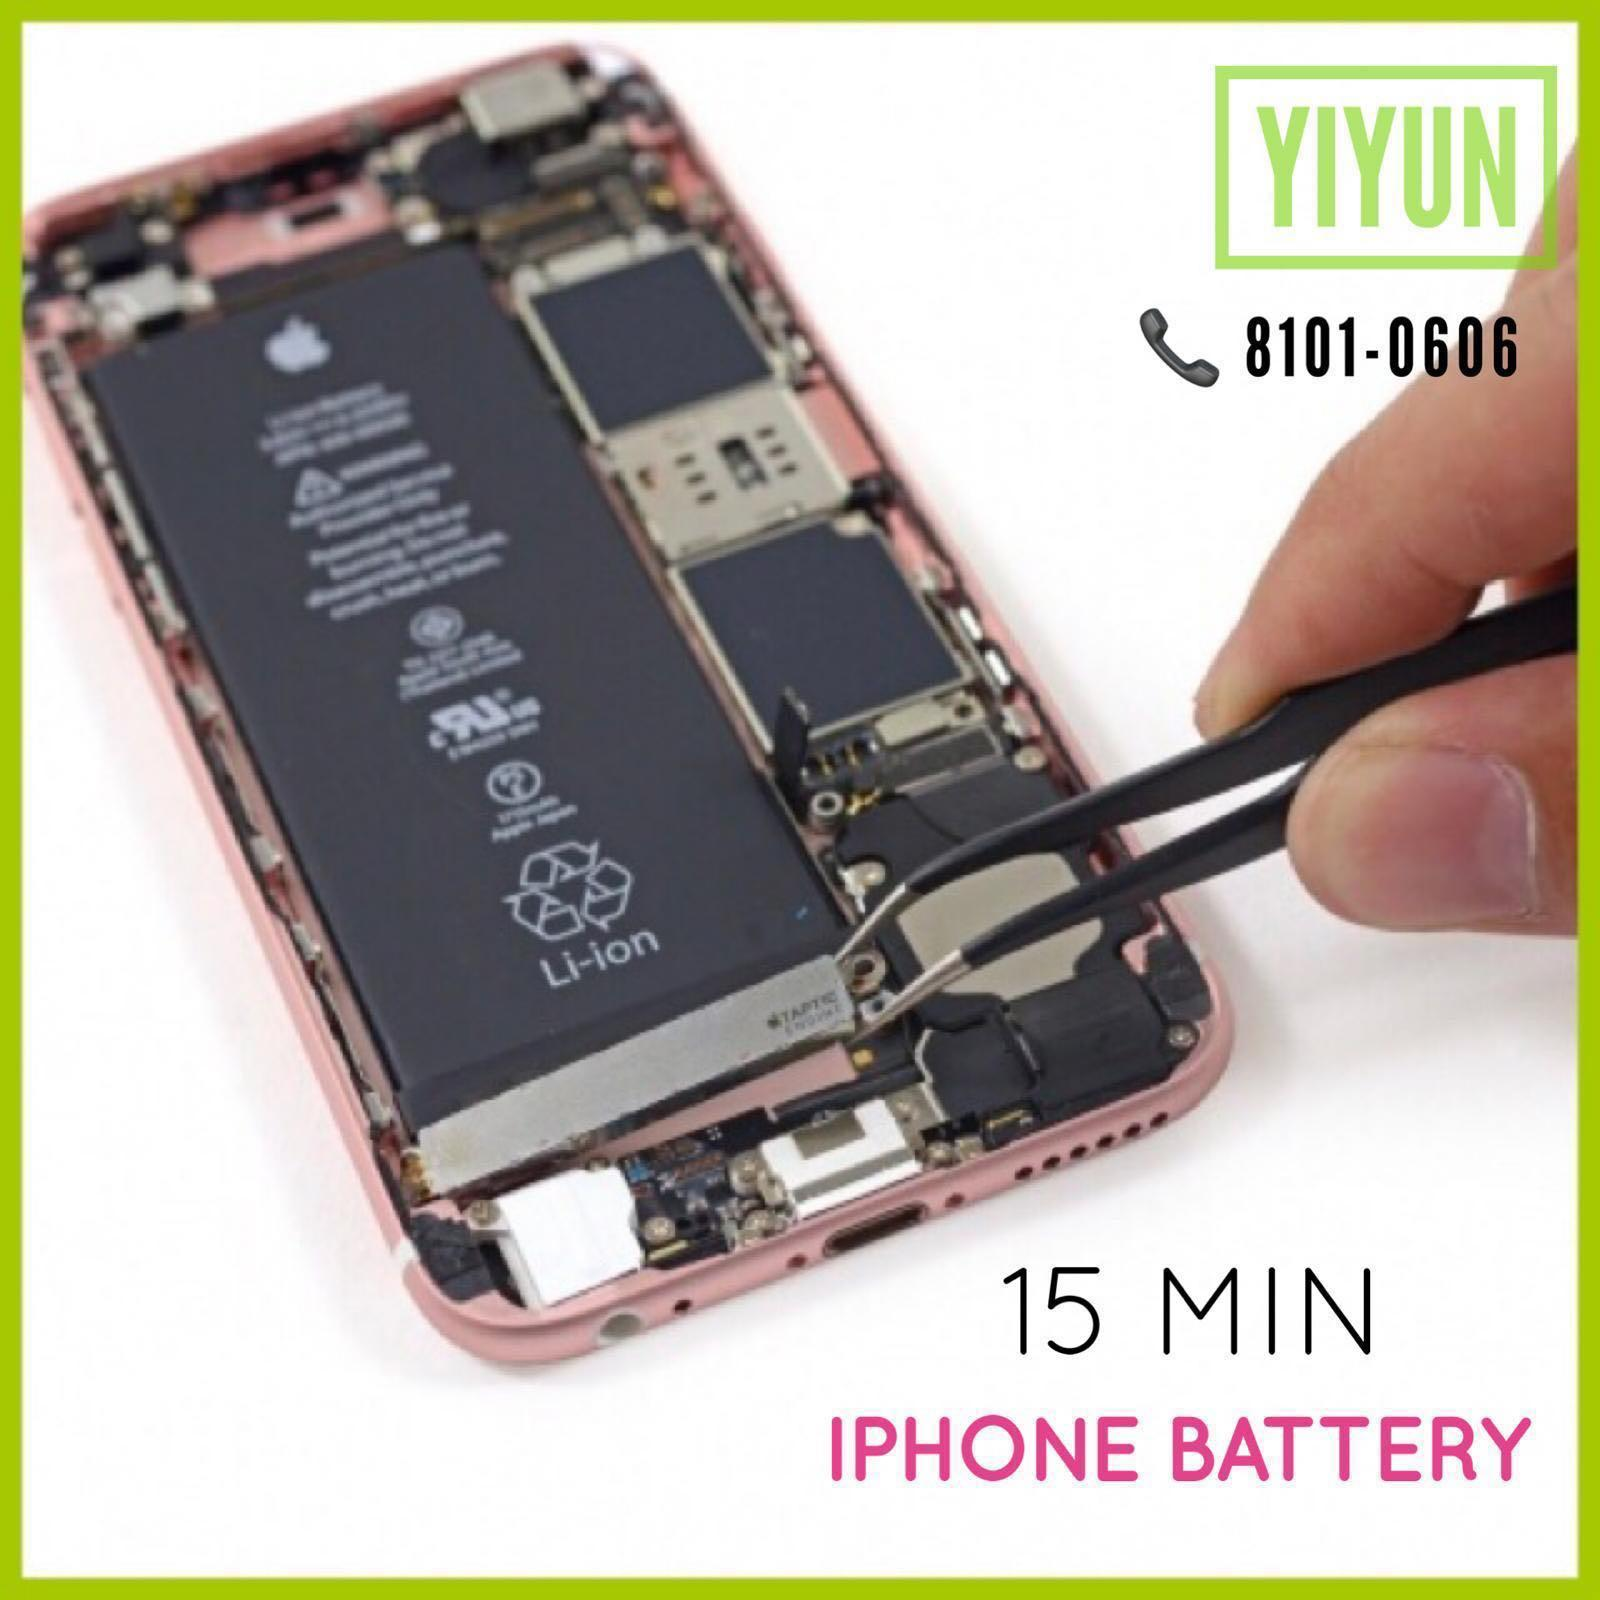 iPhone Battery Repair, iPhone Repair, Battery Replacement